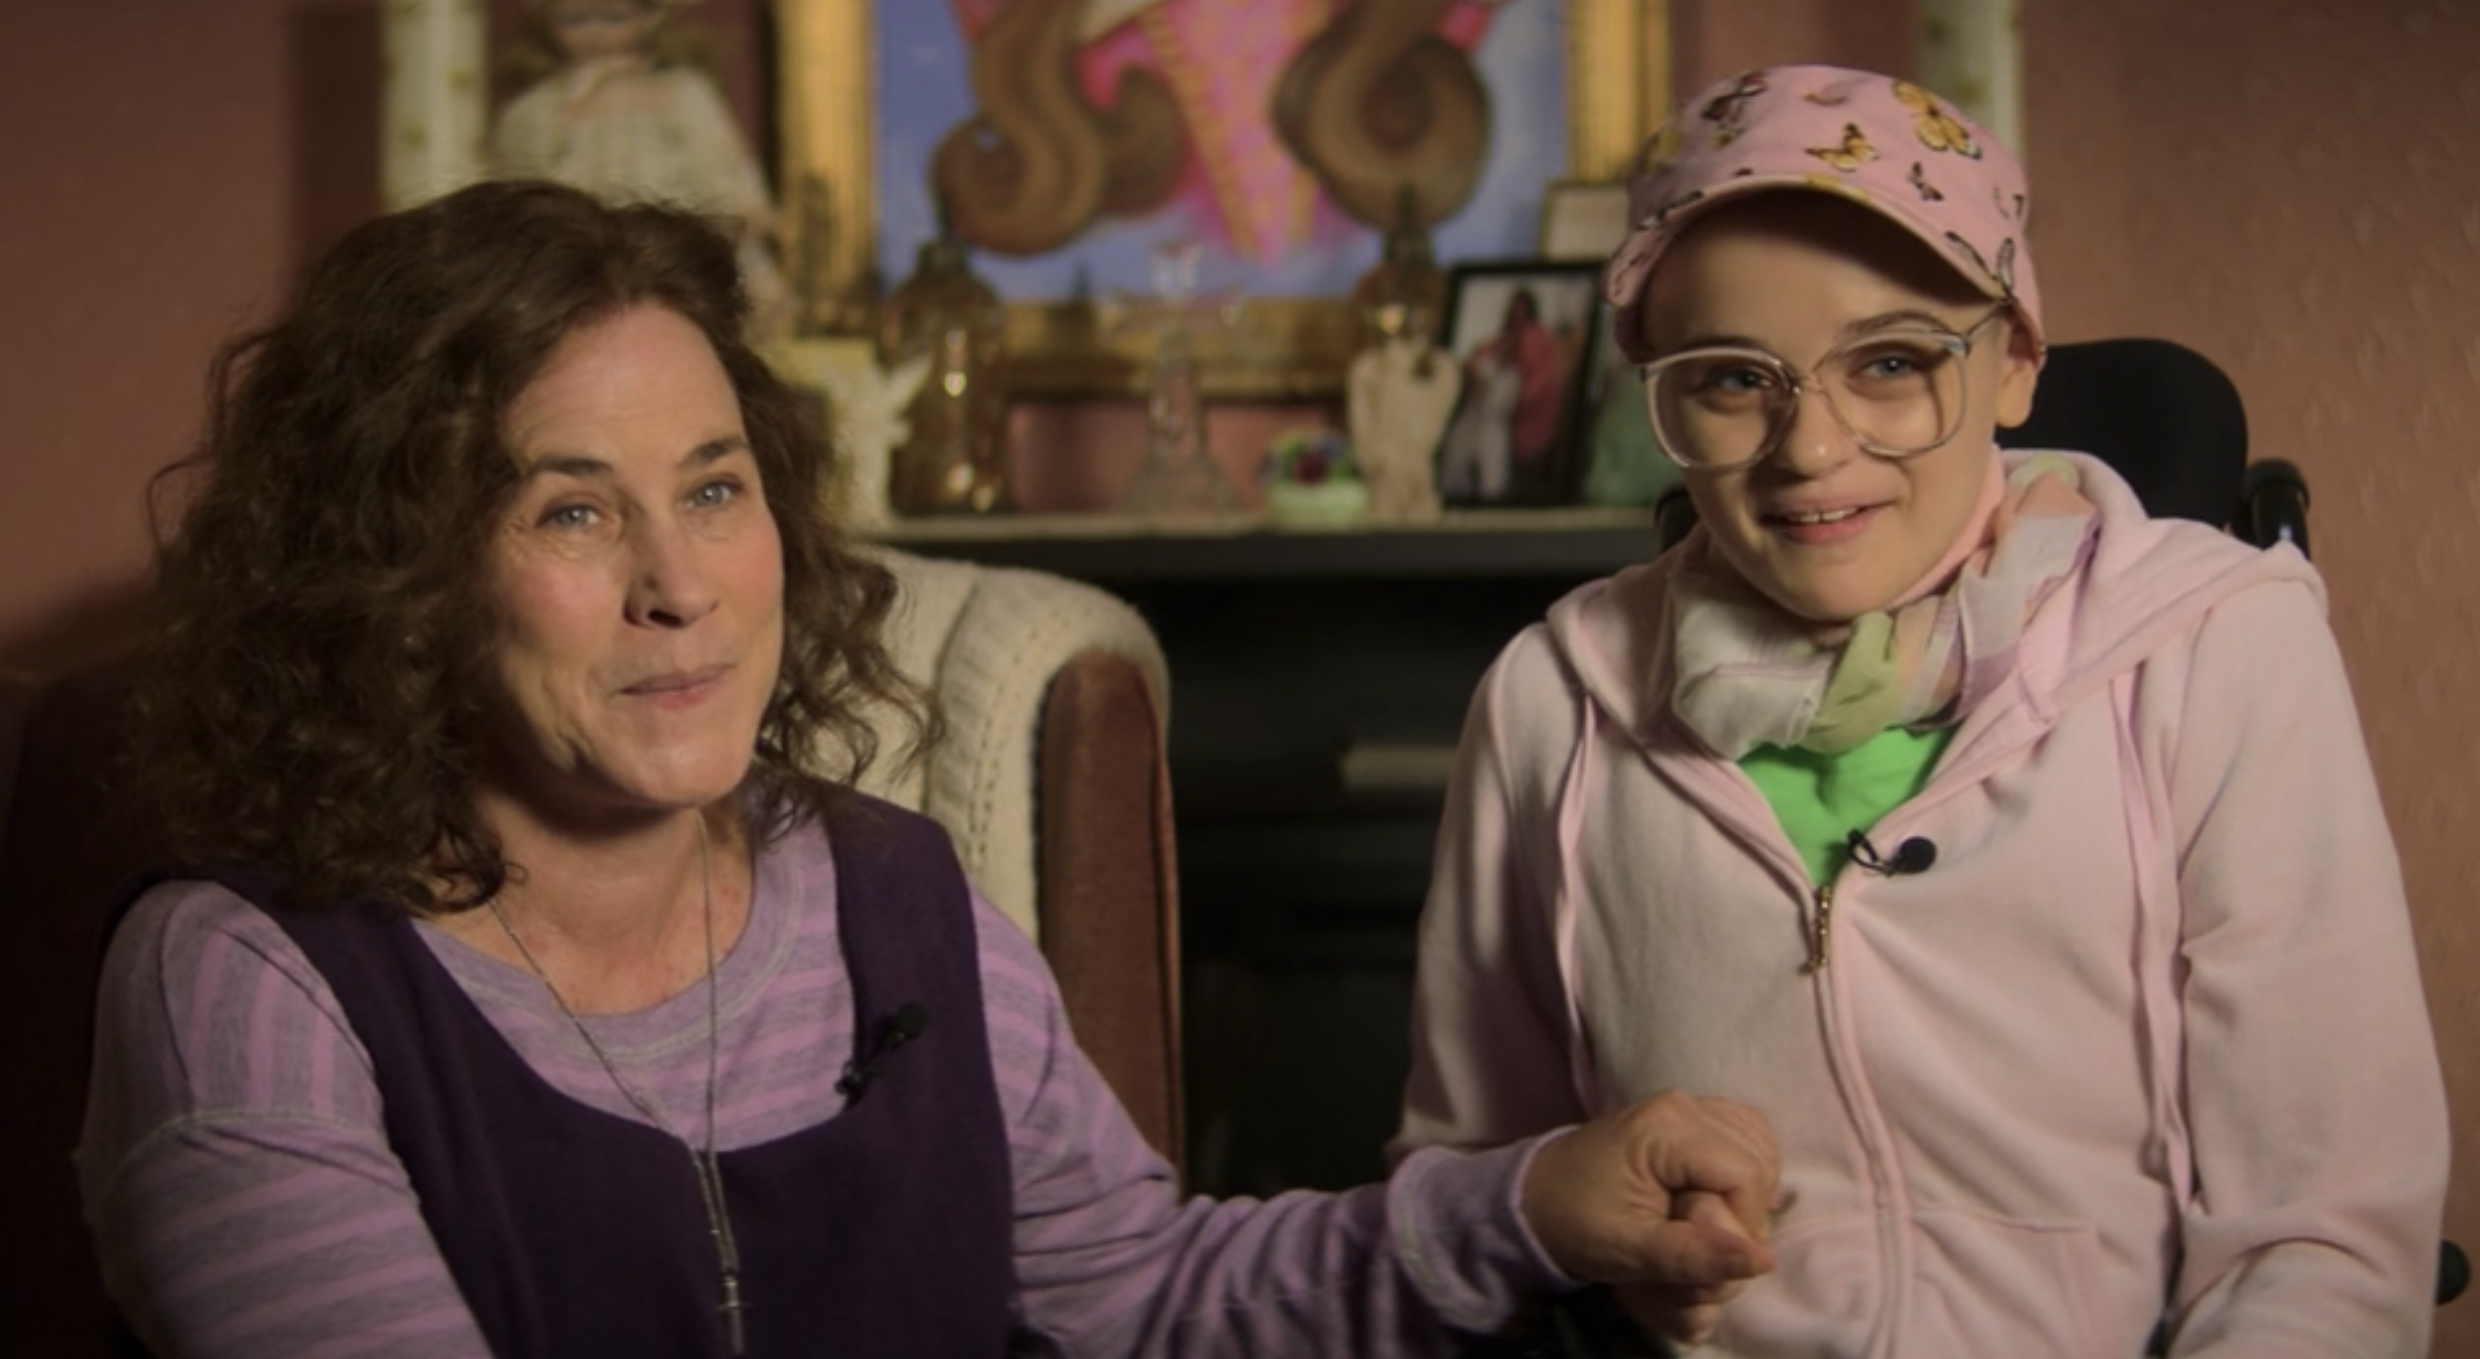 The Wildest True Moment from the First Episode of Joey King's 'The Act'